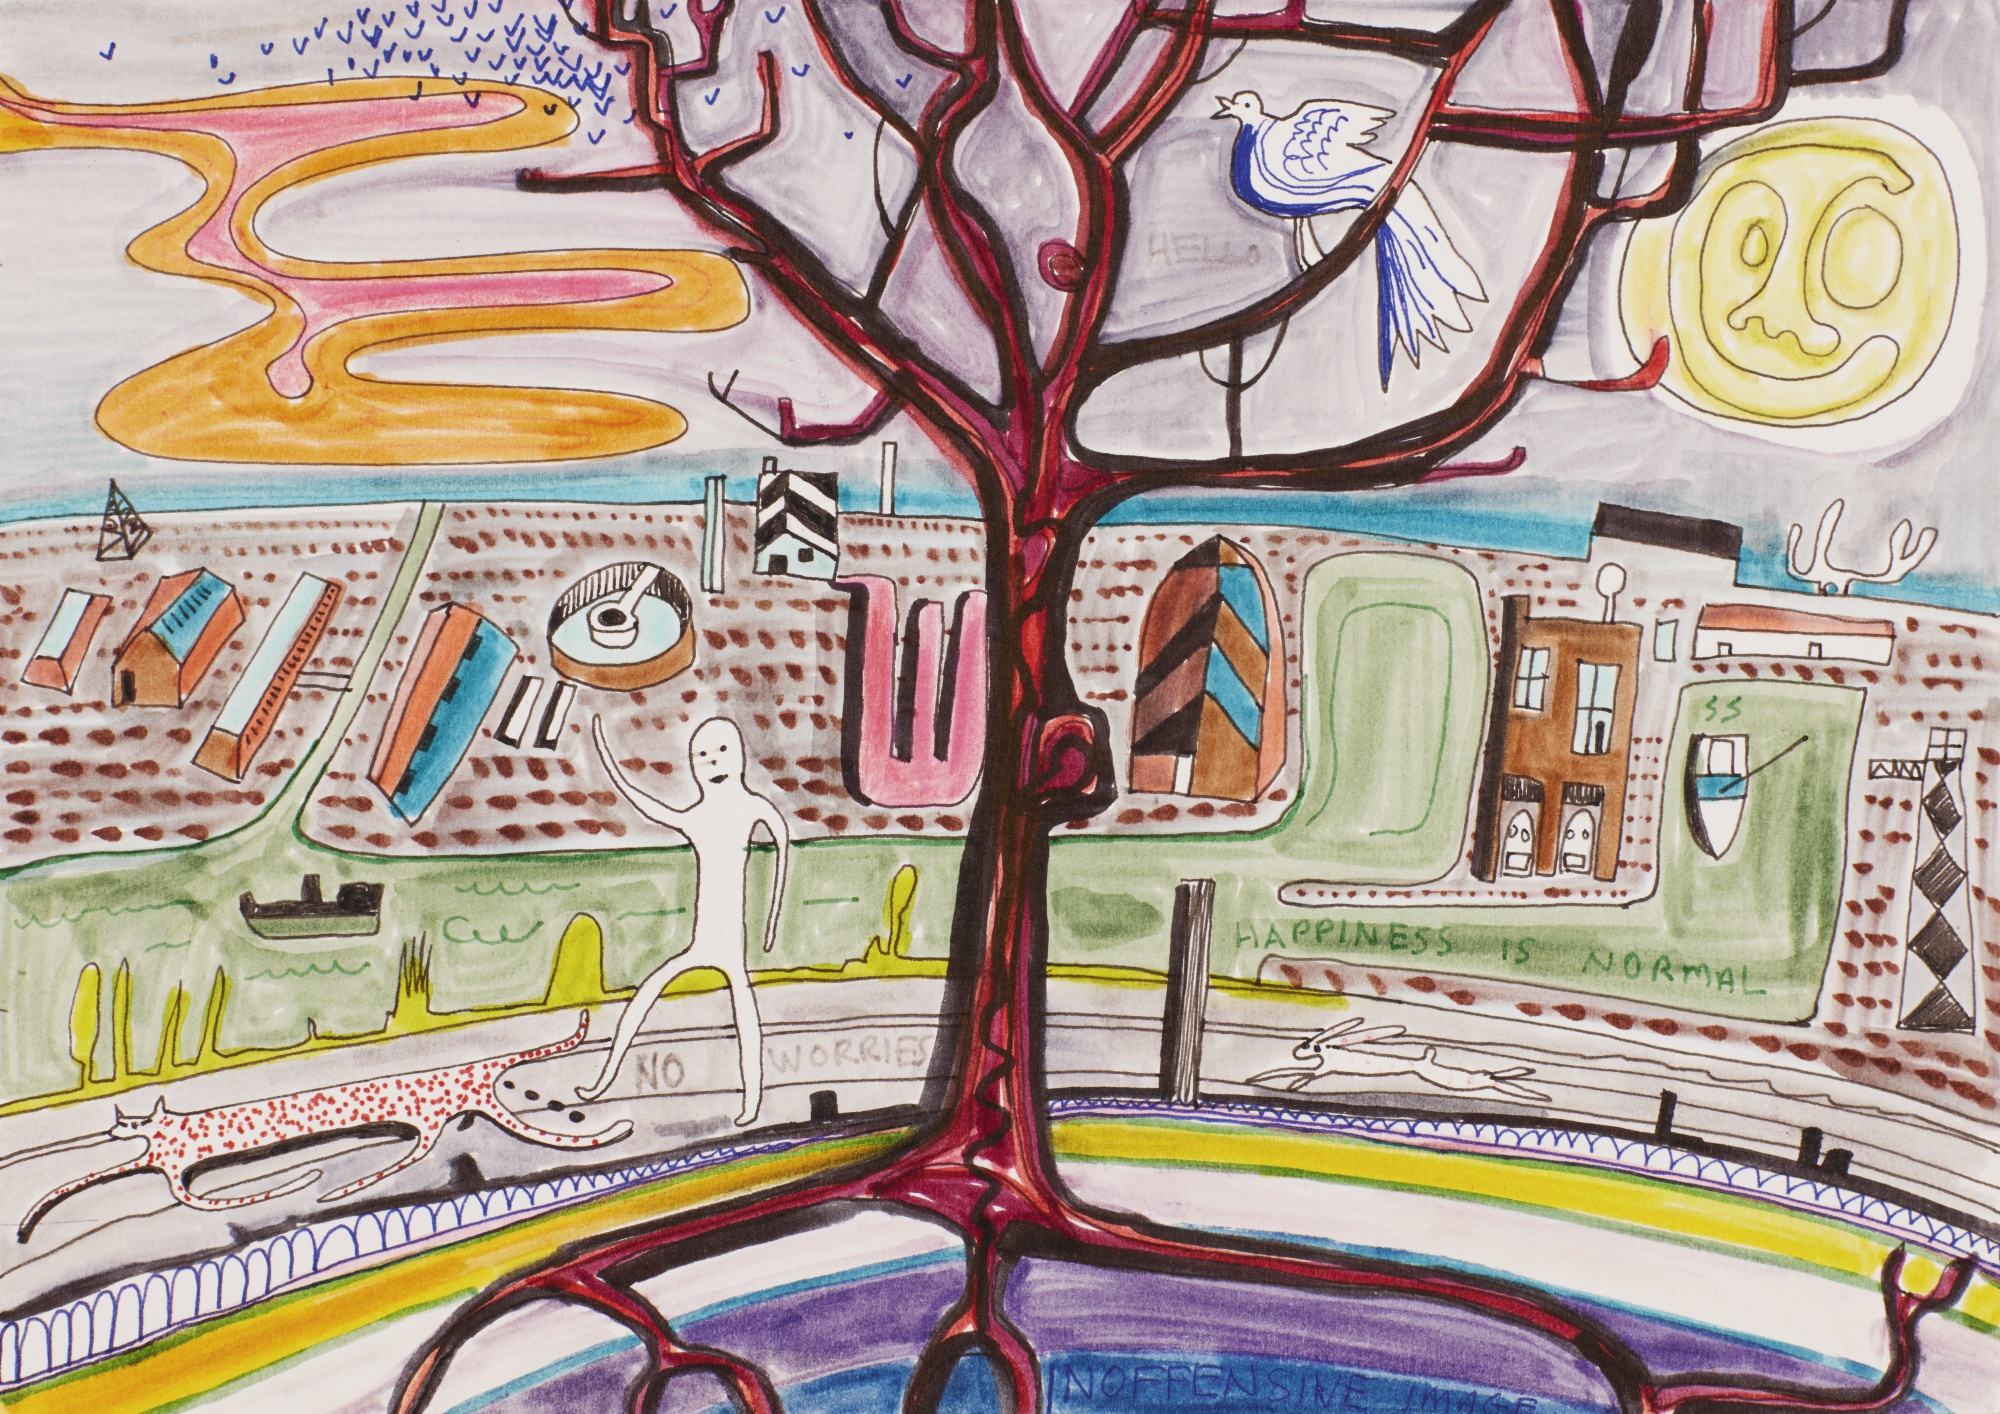 Grayson Perry-Inoffensive Image-2016